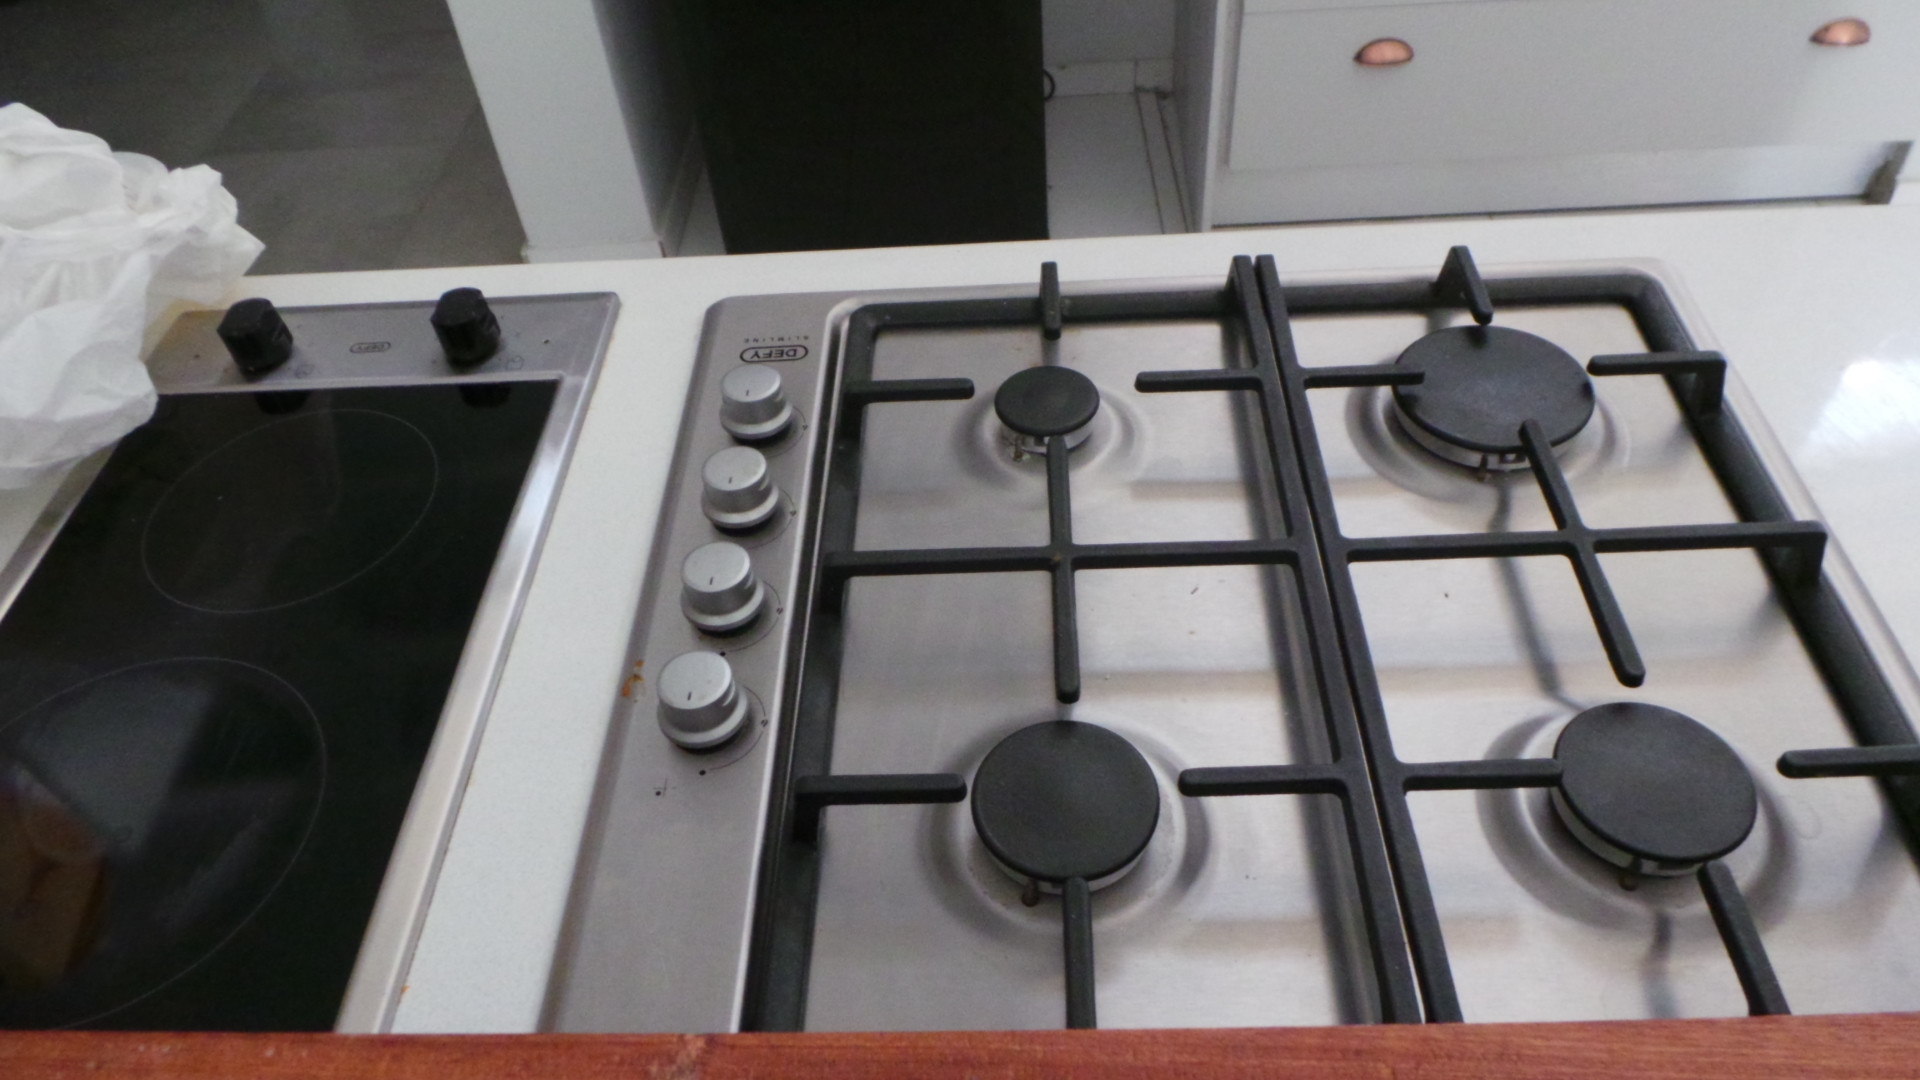 Gas and electric stove plates